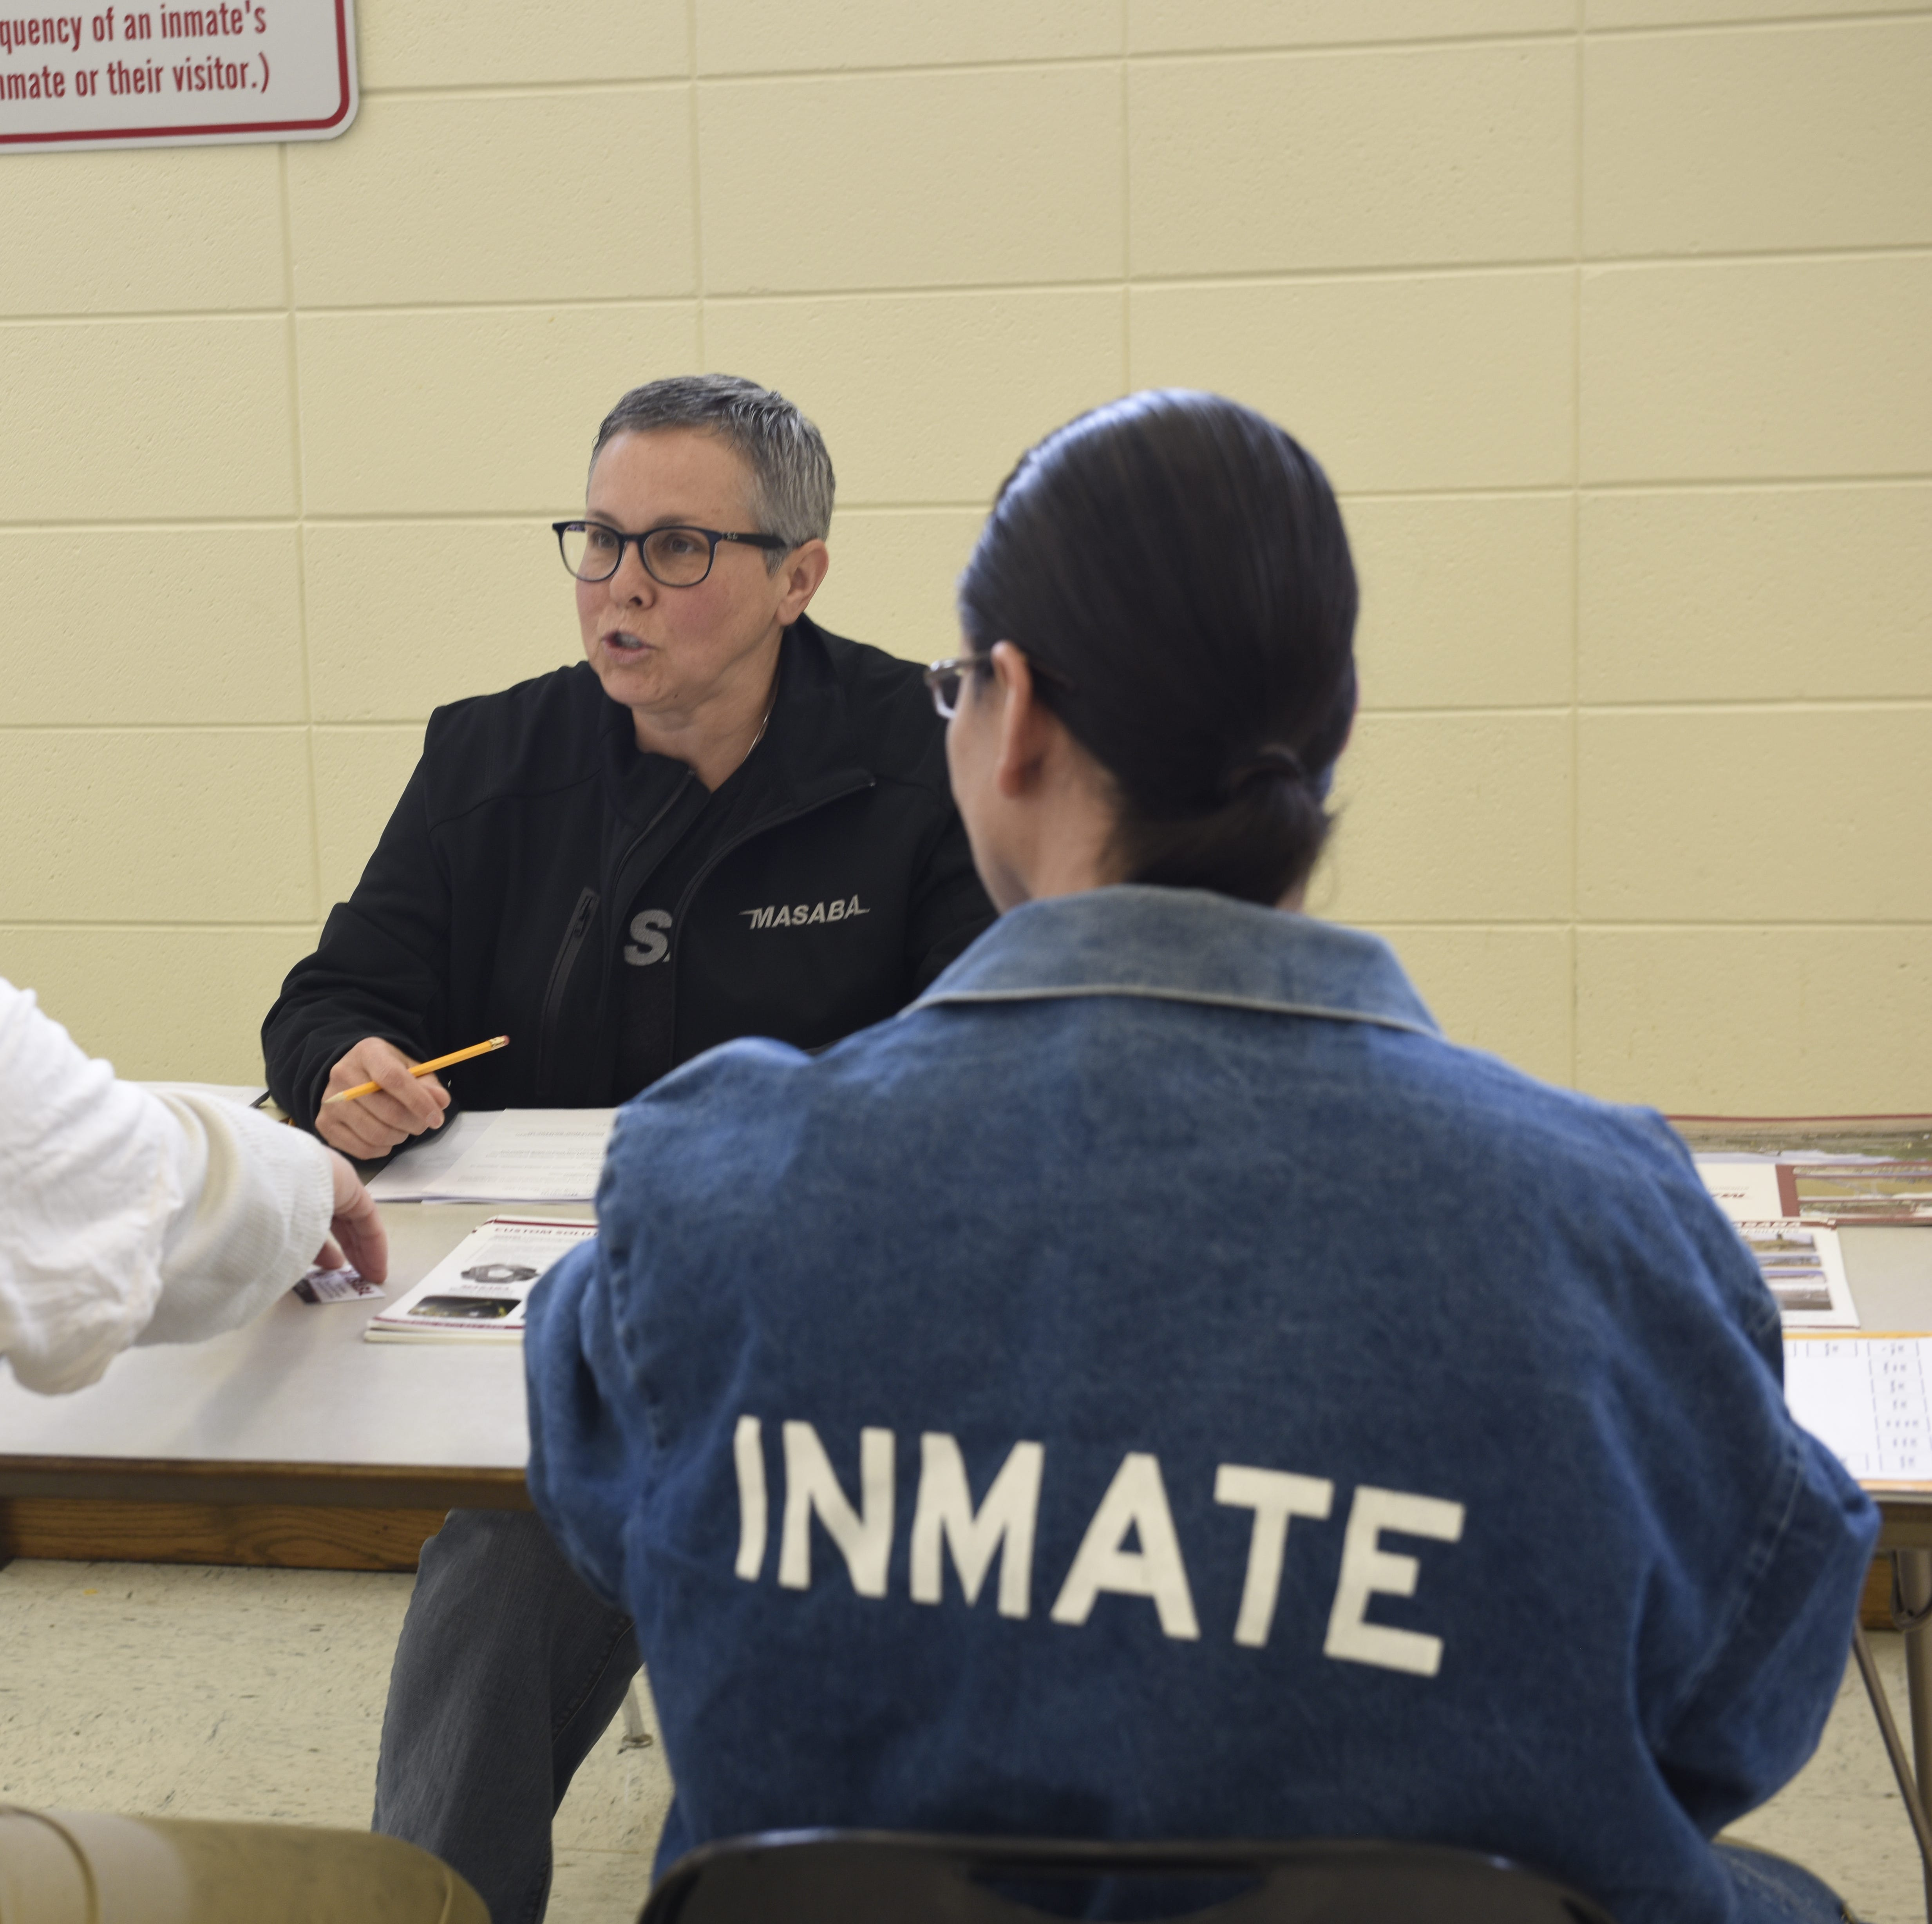 Seeking a second chance: Inmates meet prospective employers at prison job fair